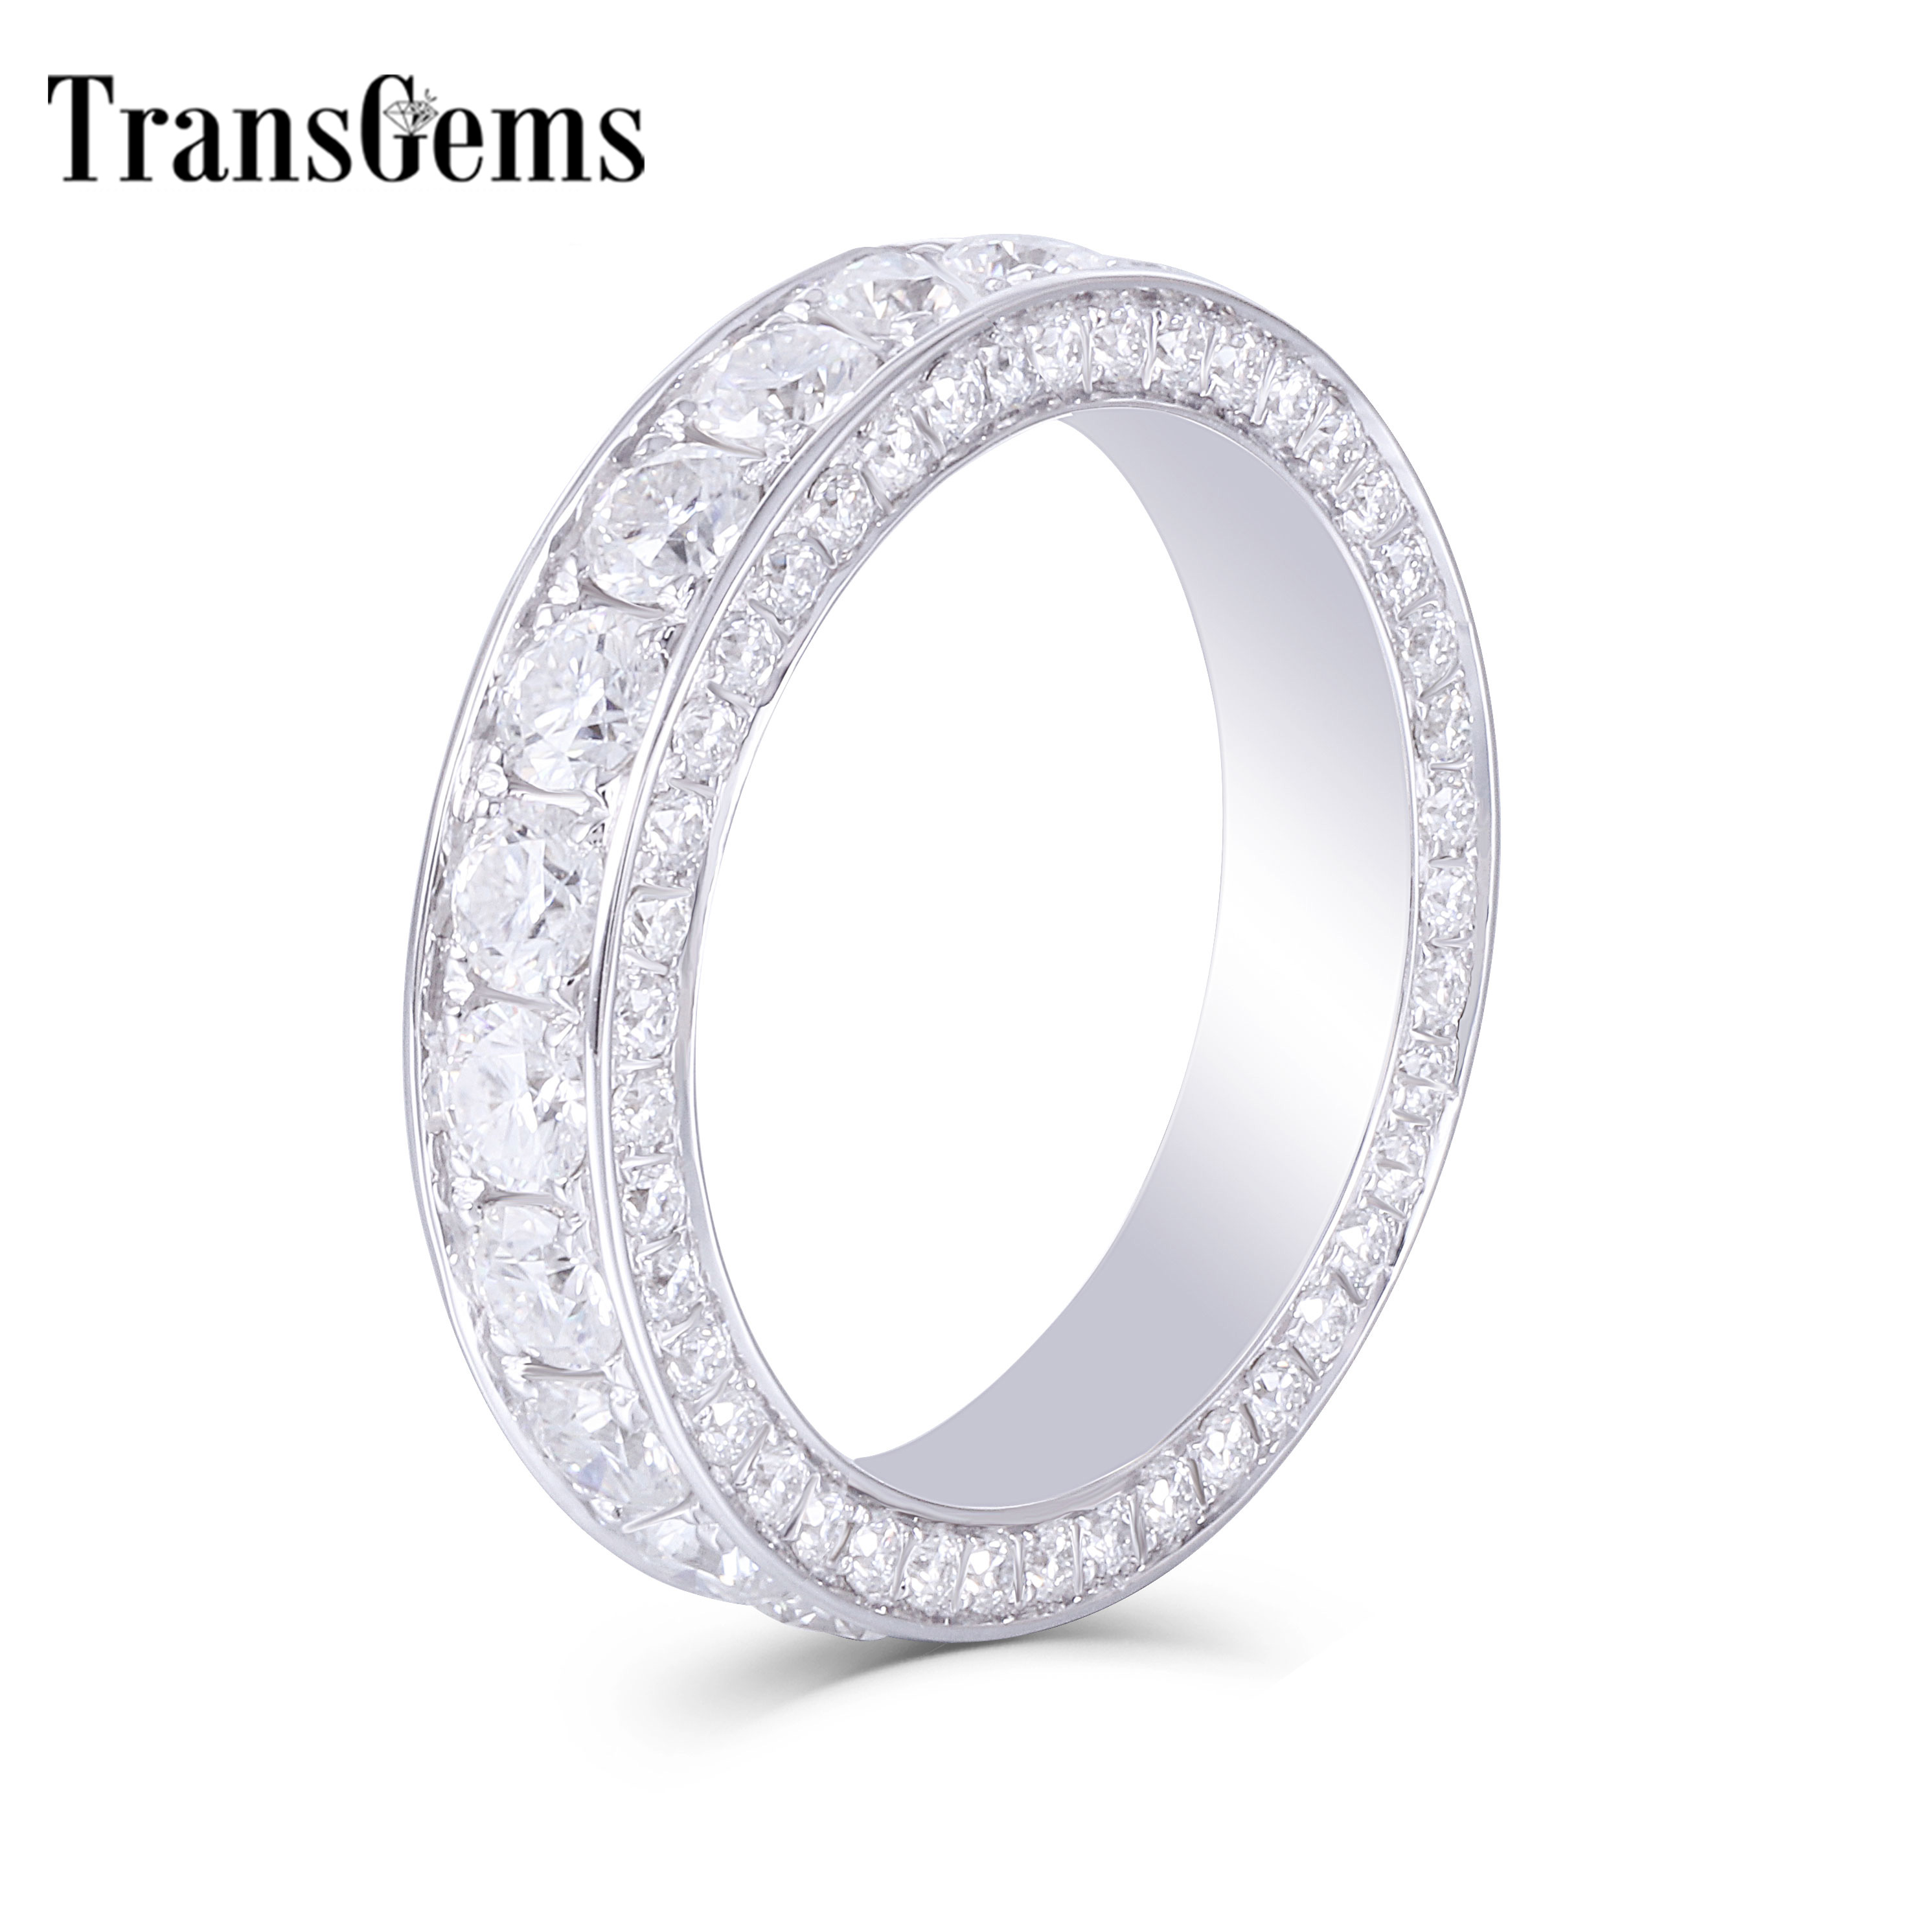 Transagems 14K White Gold F Color Moissanite Eternity Anniversary Wedding Band Engagement Band for Women and